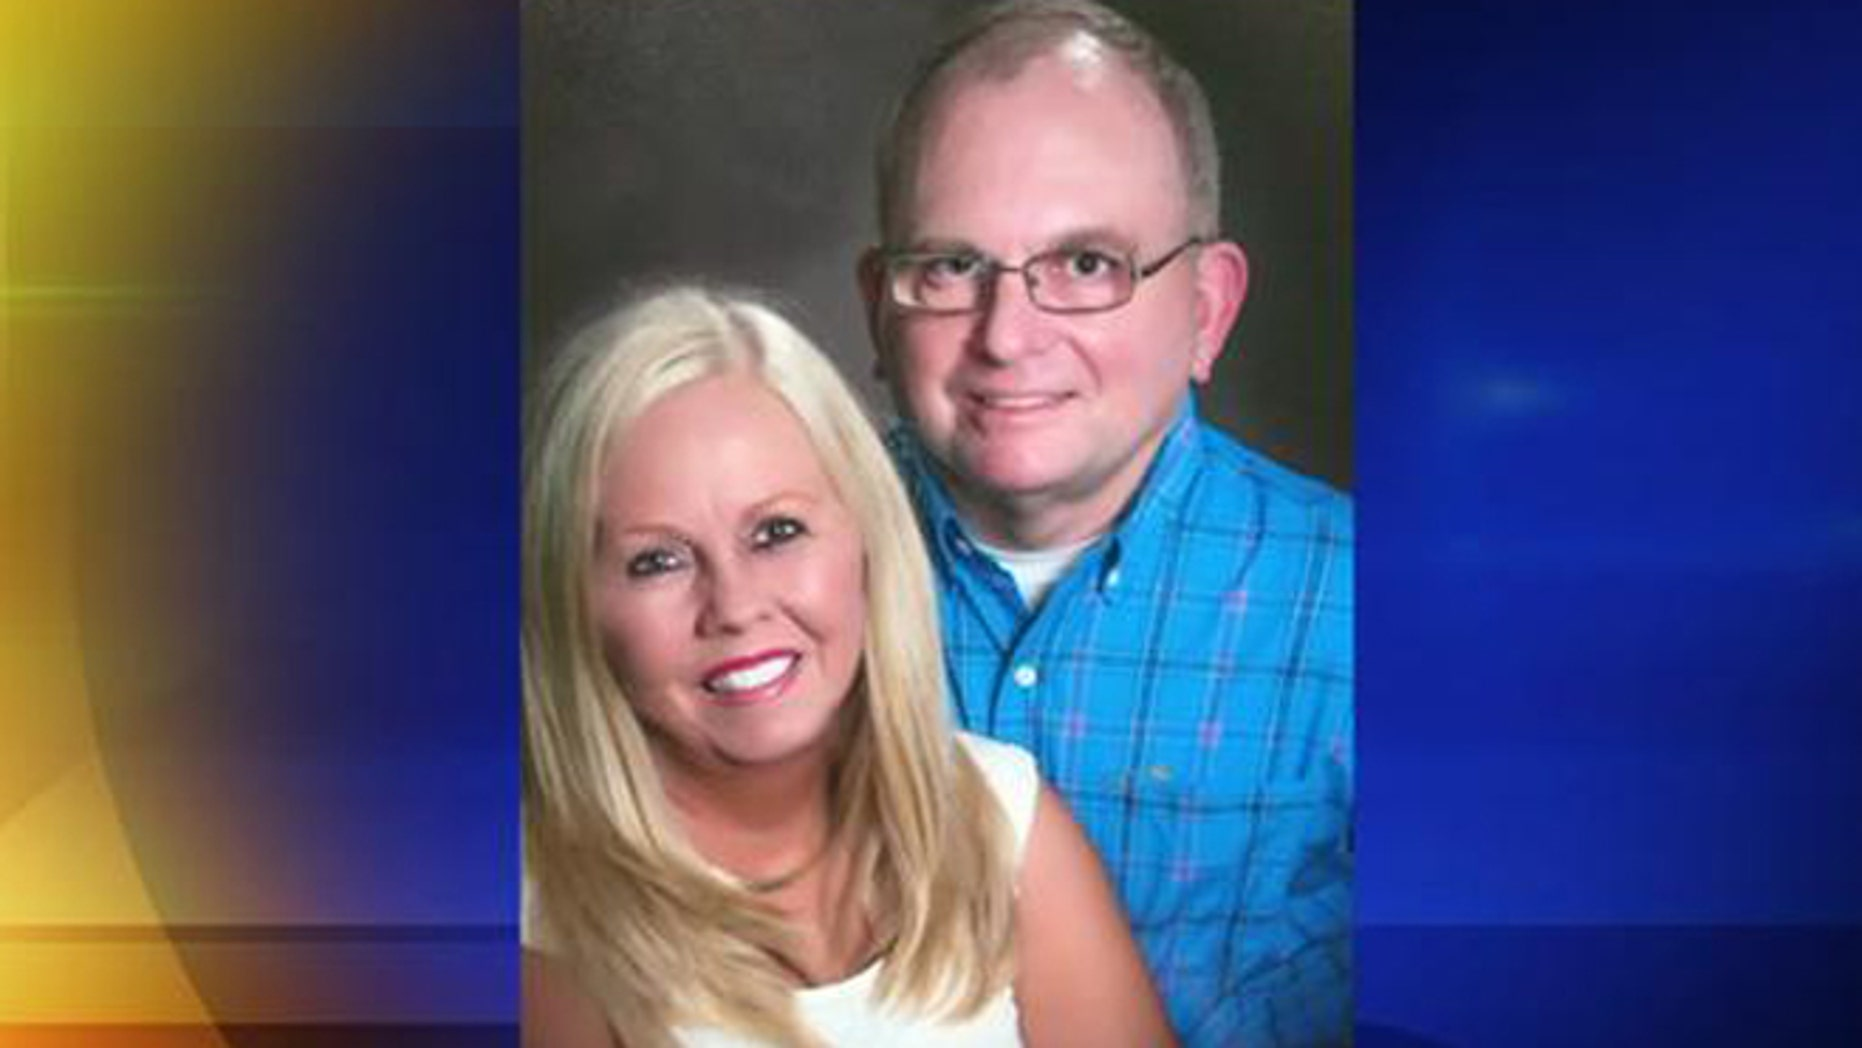 Lillian Terry was found dead Saturday. John Terry, her husband, has been missing for more than a year (WTVD-TV)